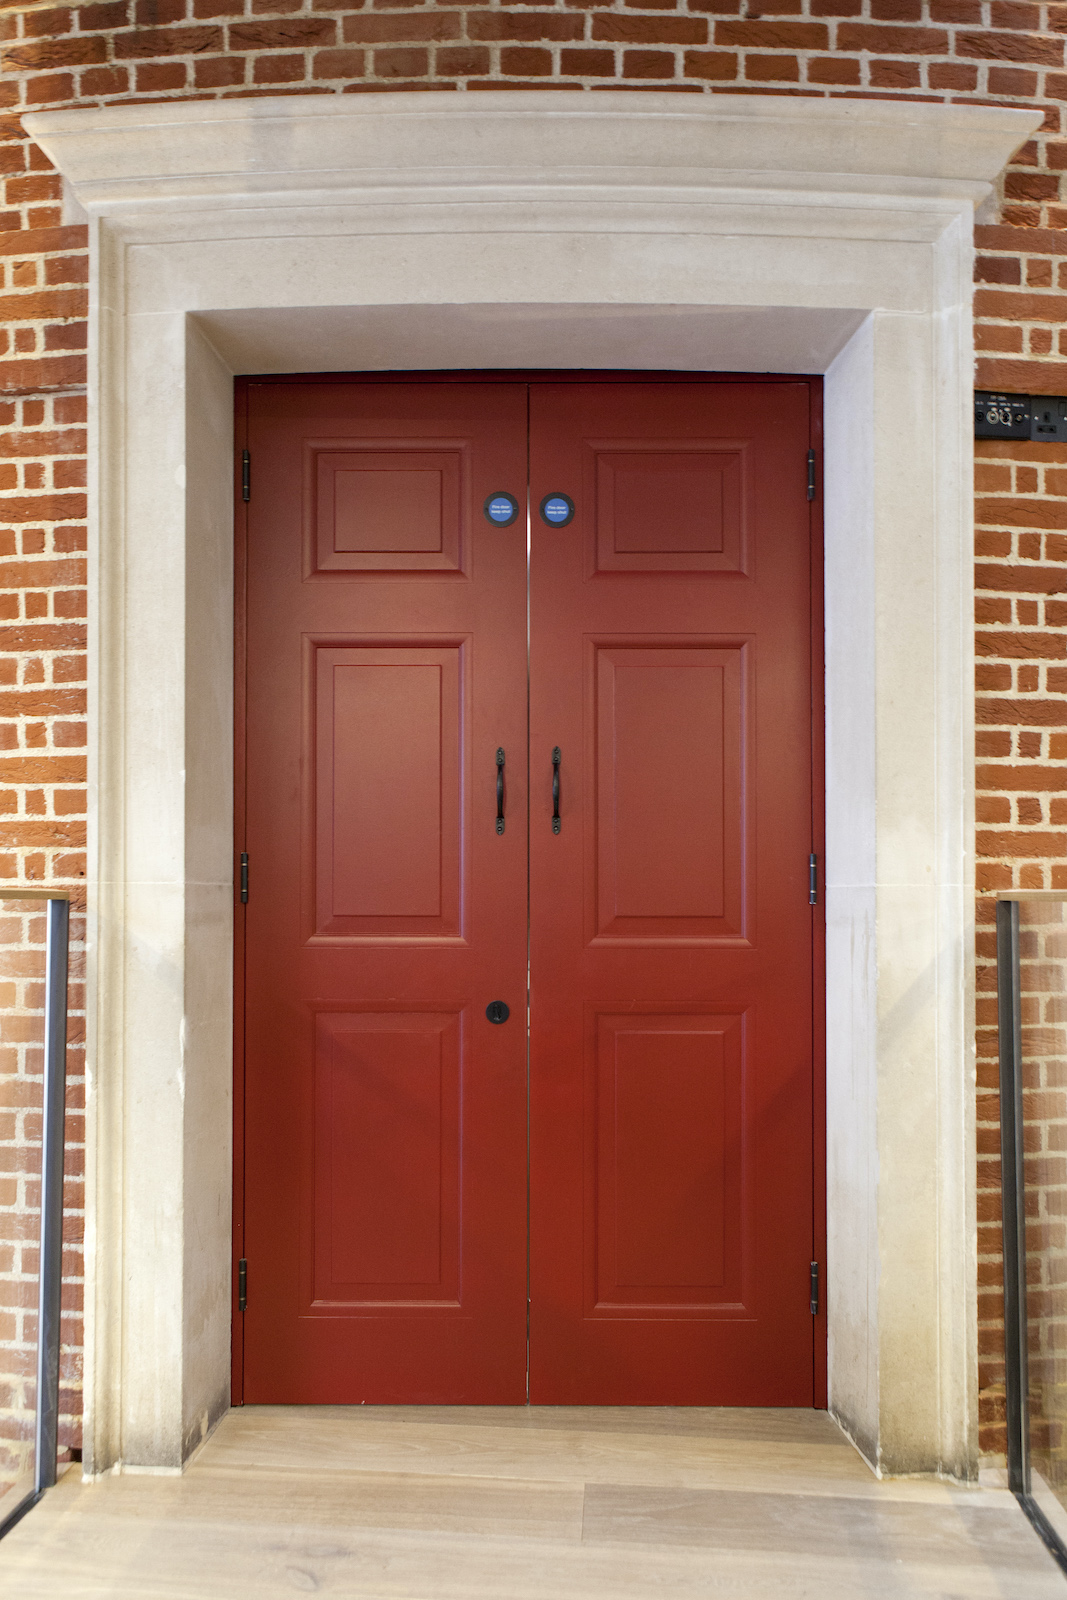 A red door with a white frame